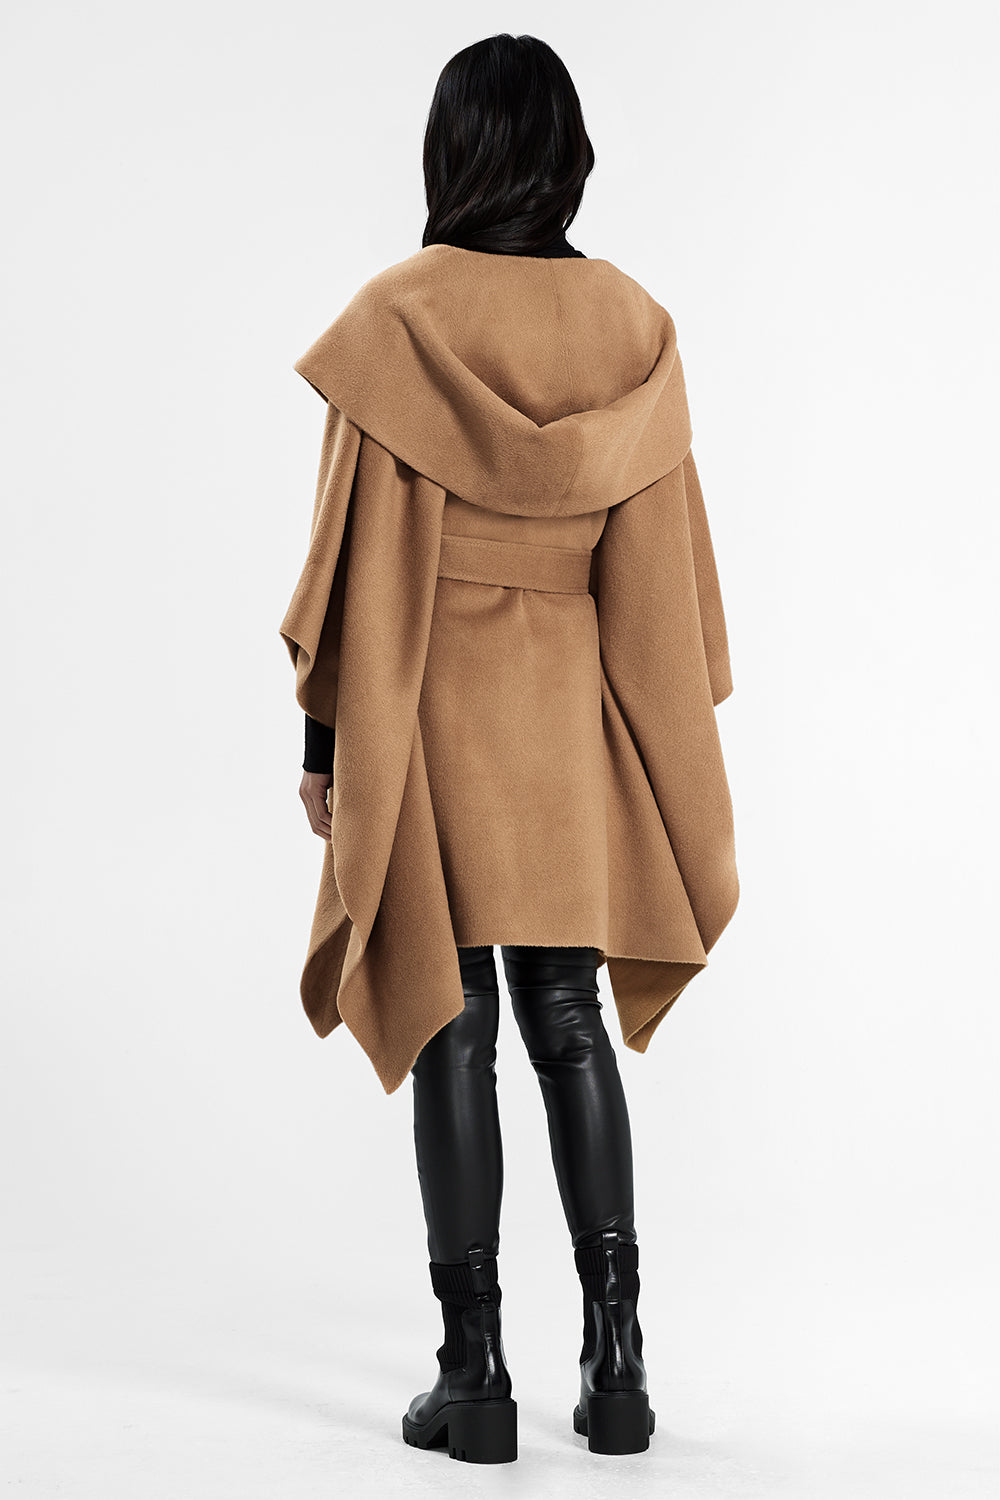 Sentaler Oversized Hooded Poncho with Belt featured in Baby Alpaca and available in Dark Camel. Seen from back.